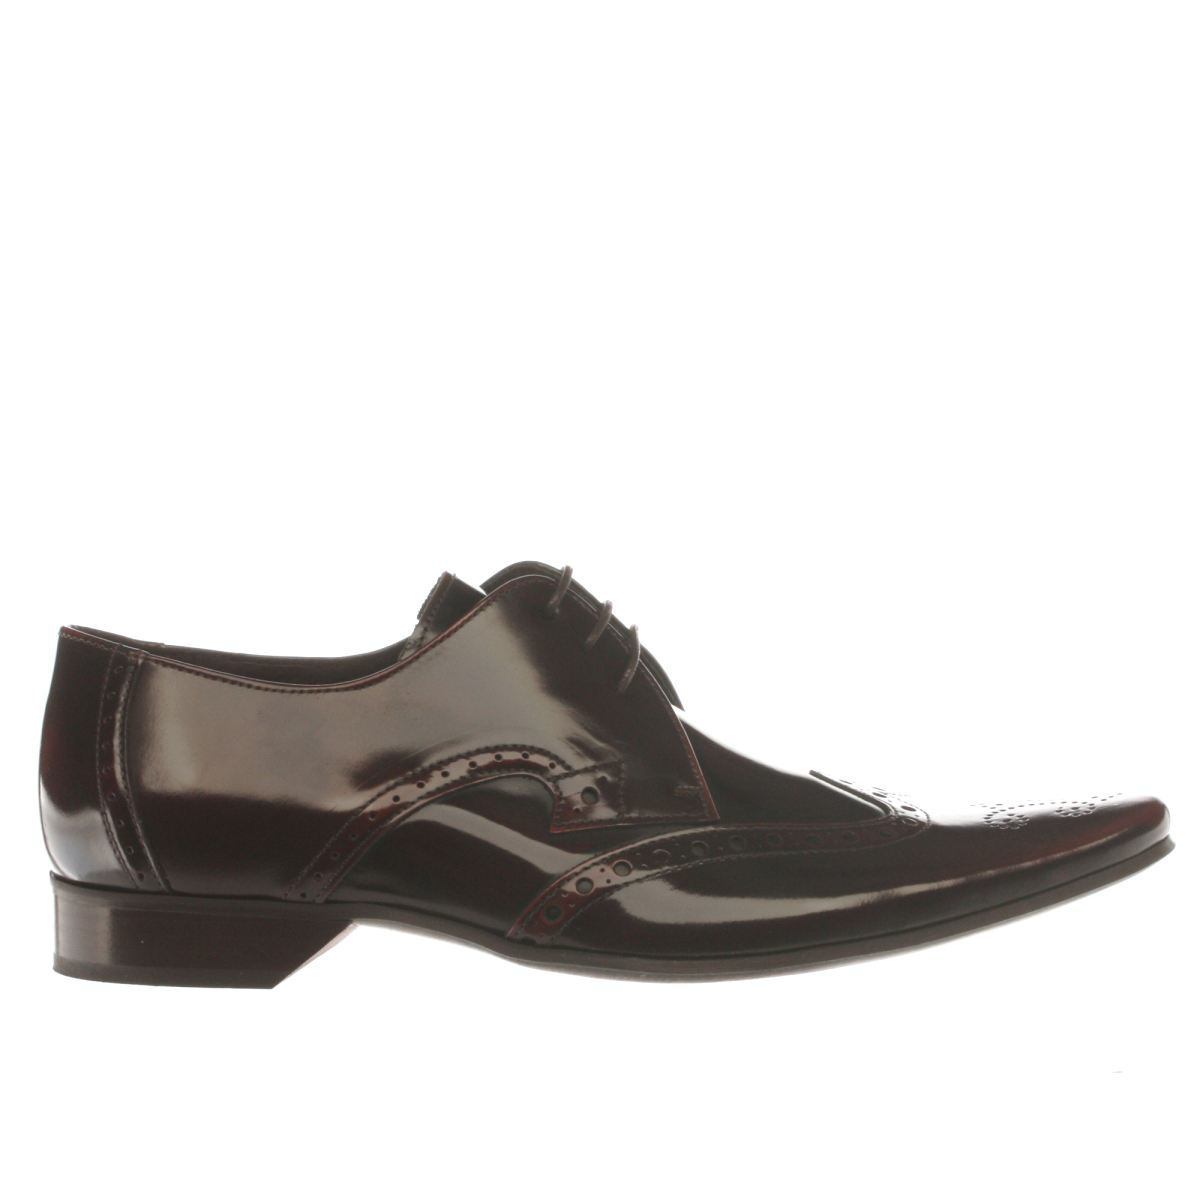 jeffery west brown black brogue shoes